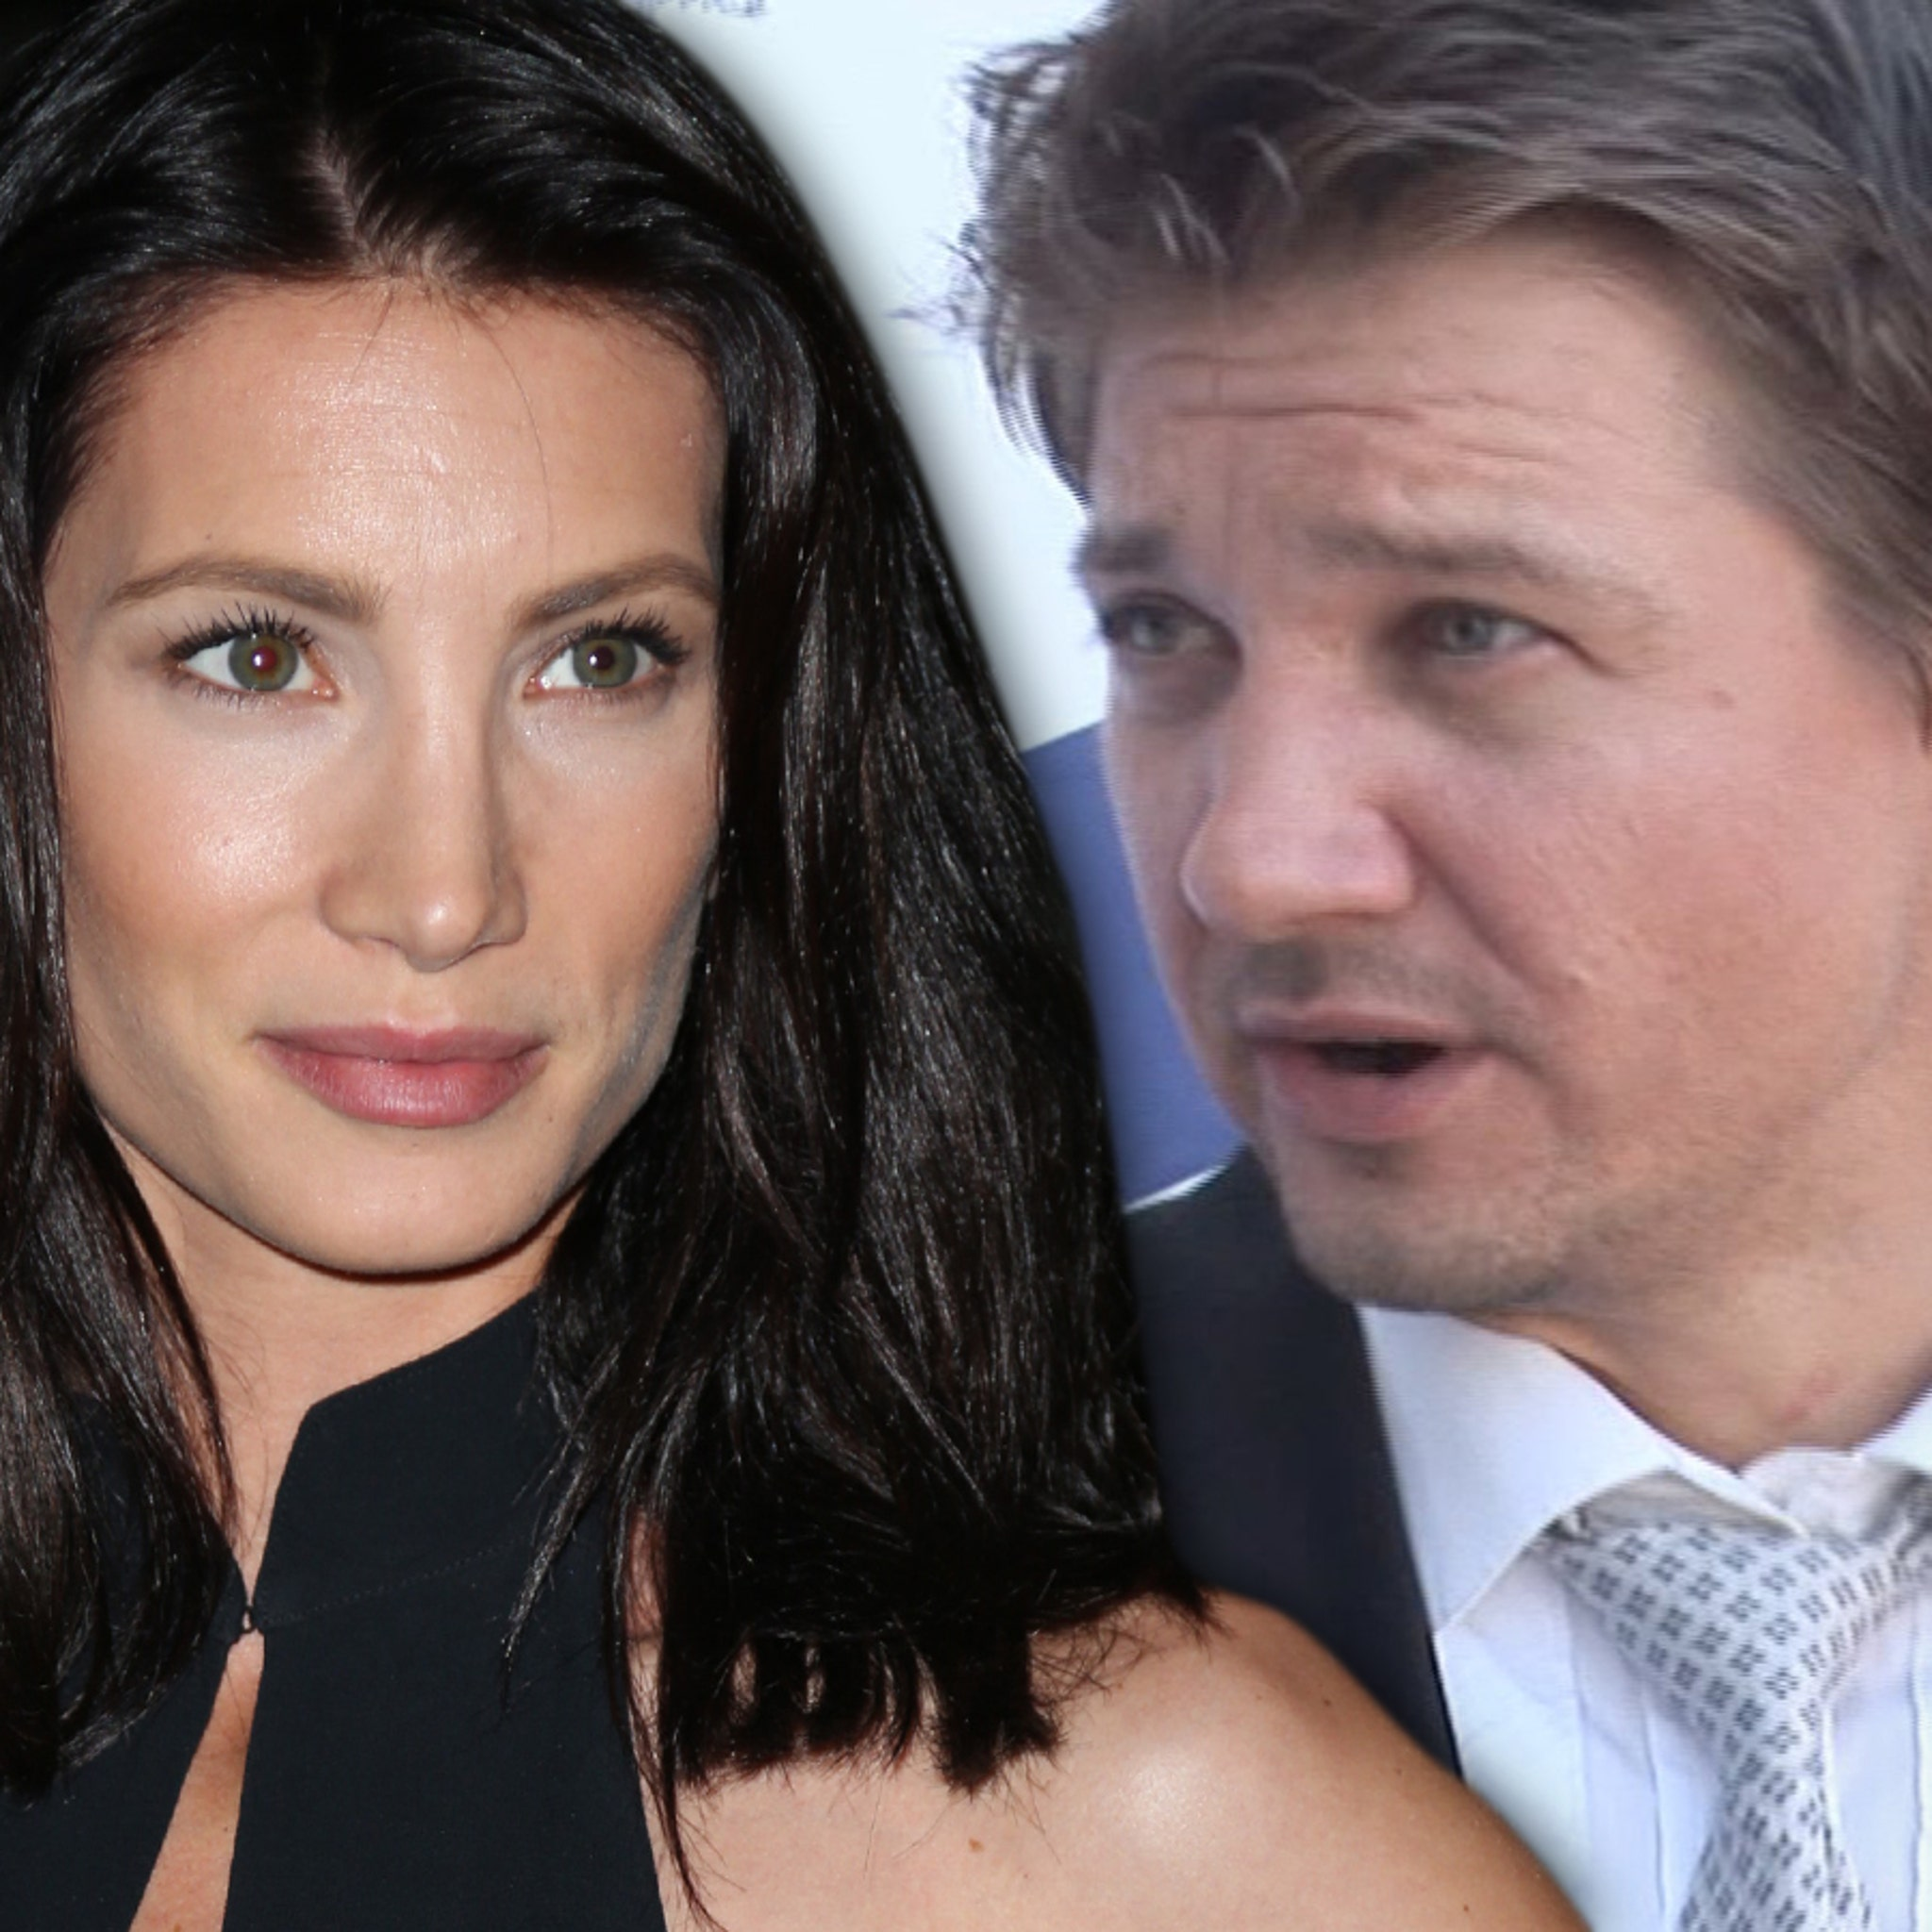 Jeremy Renner's Ex-Wife Says He Put Gun in Mouth and Threatened to Kill Her